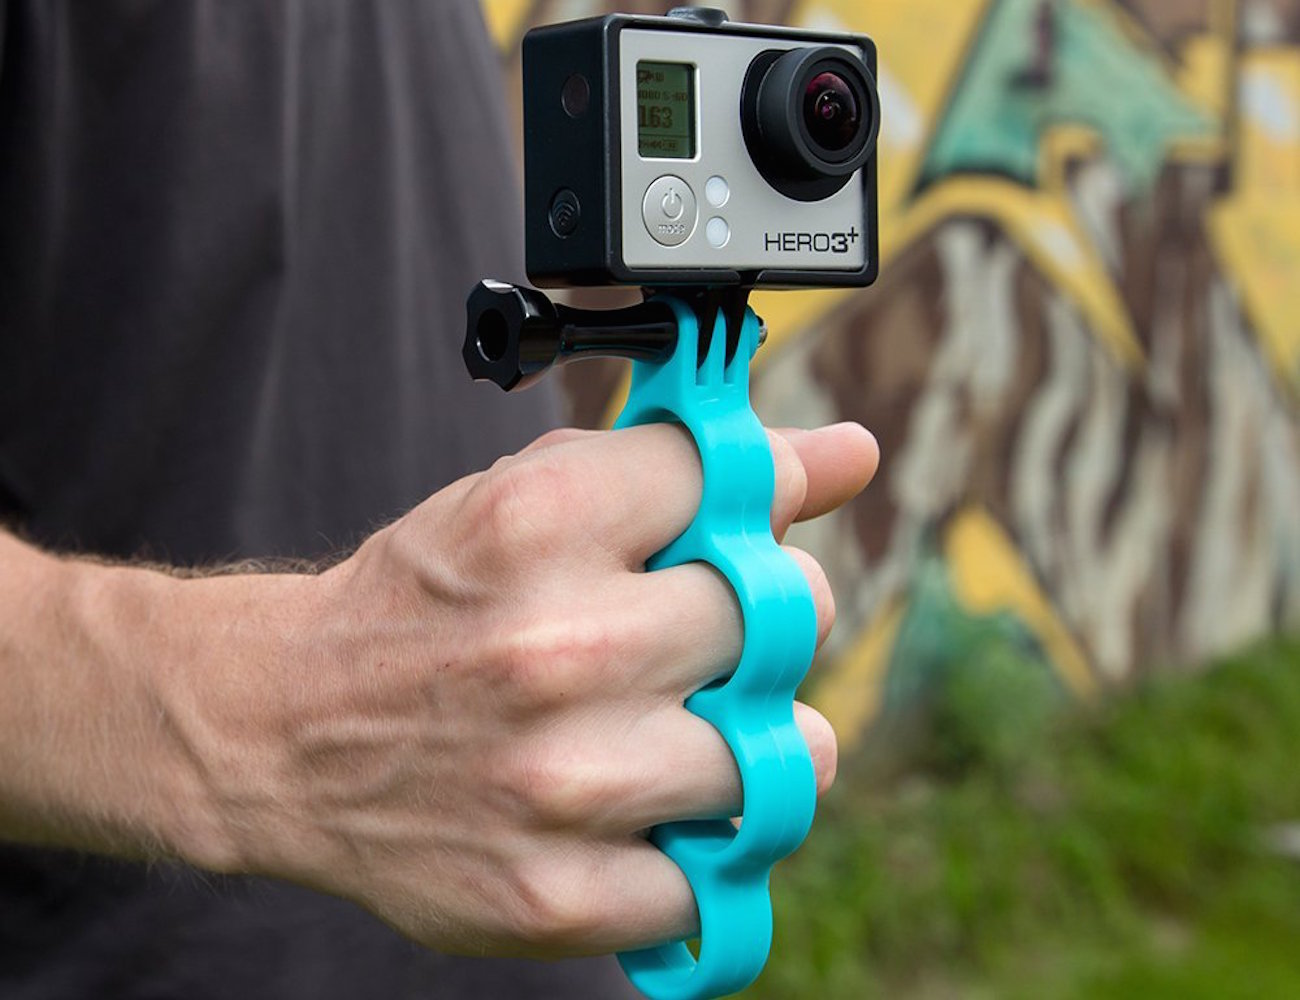 GoKnuckles – Handheld Mount for Your GoPro HERO Camera